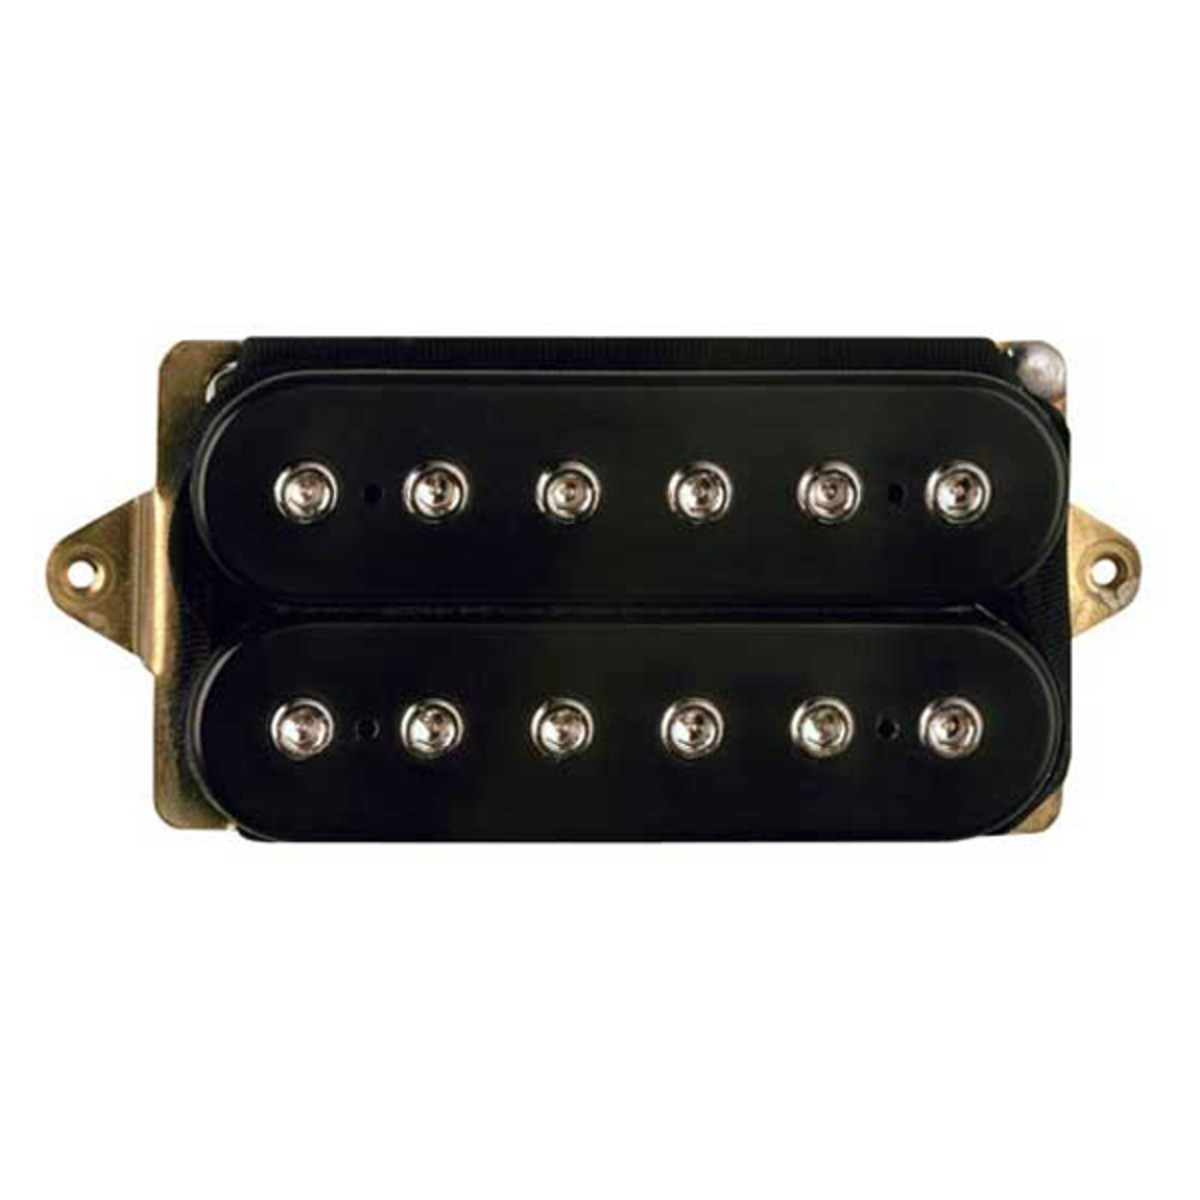 dimarzio dp258 titan neck humbucker guitar pickup black at gear4music. Black Bedroom Furniture Sets. Home Design Ideas